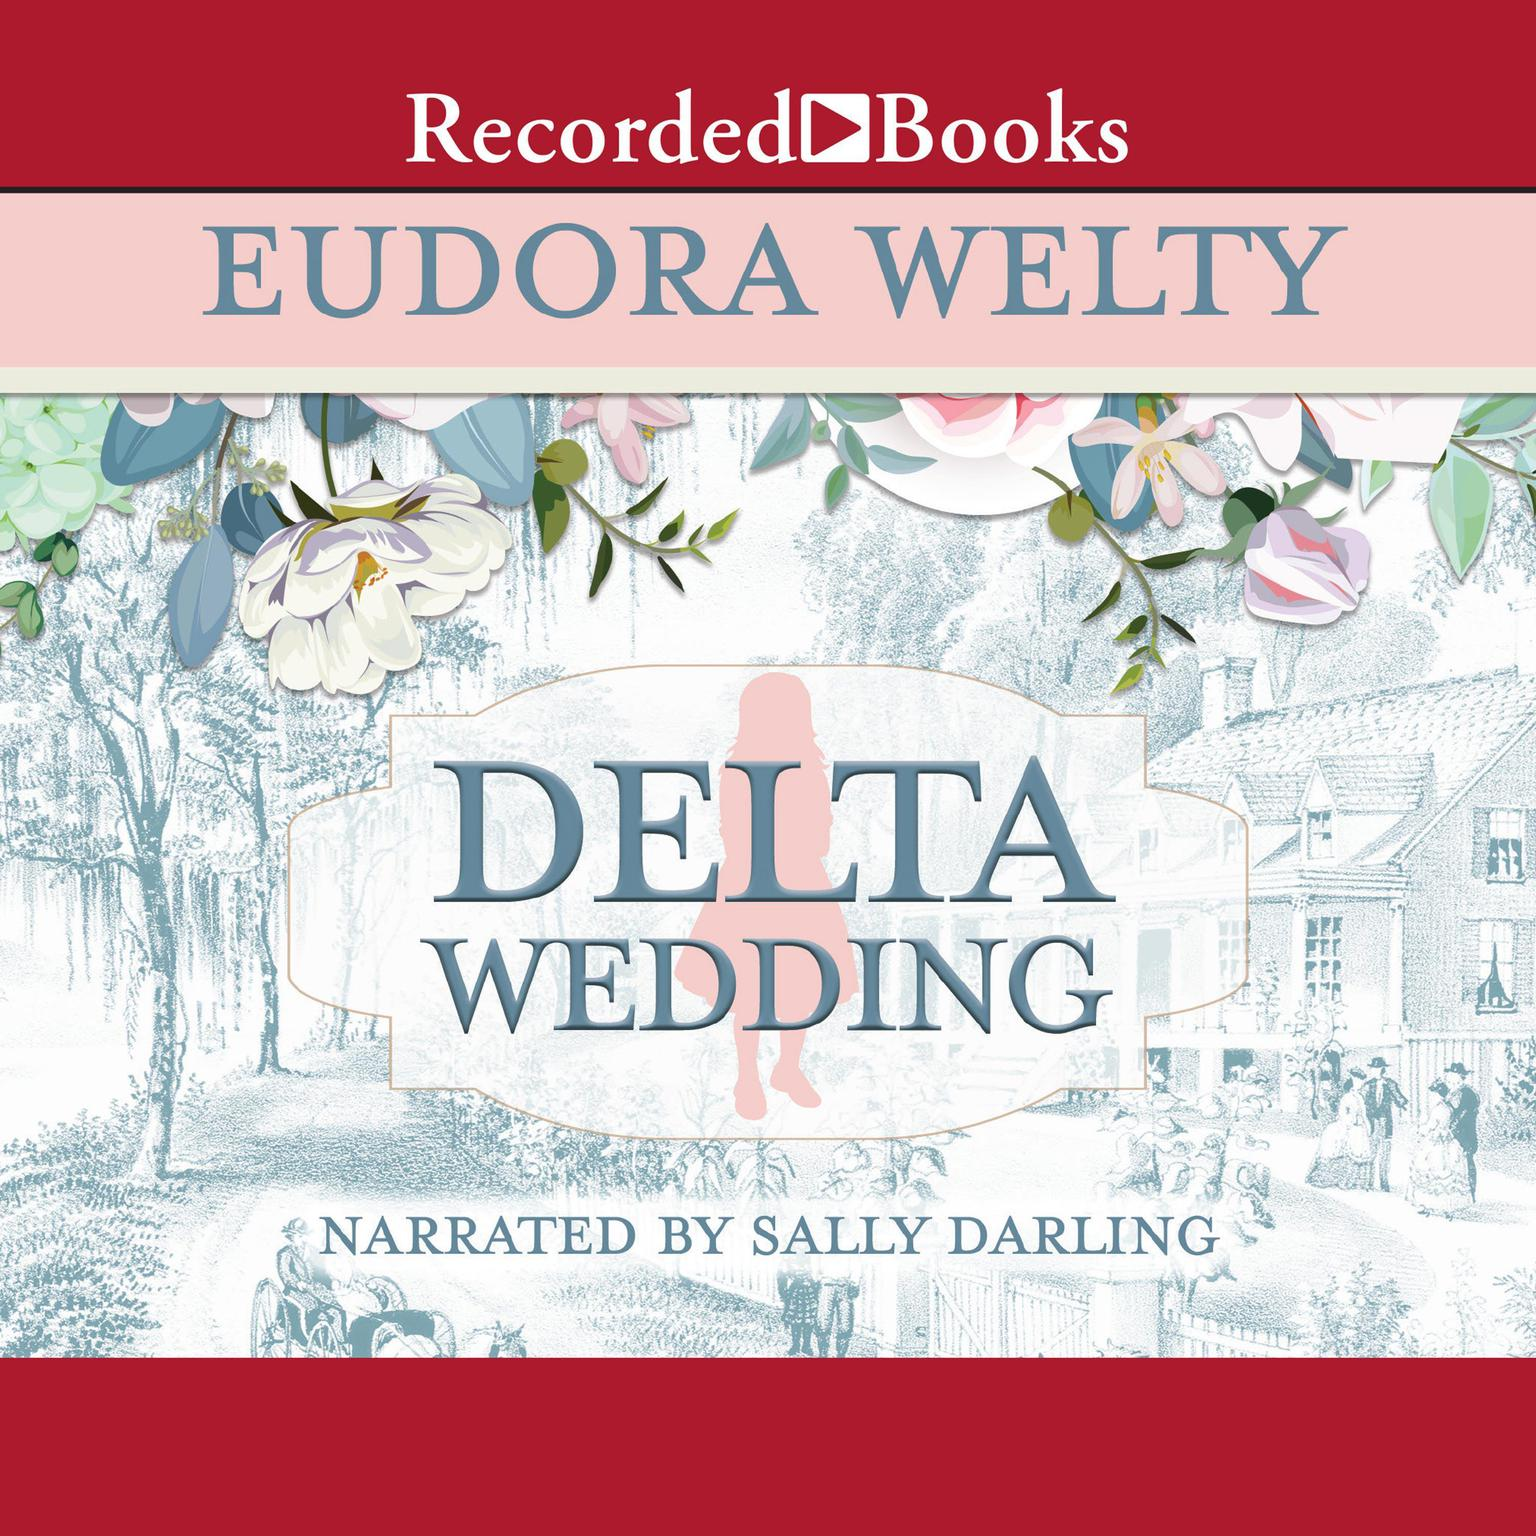 """feminism and sexuality in eudora weltys delta wedding essay Apollo have reissued eudora welty s second novel delta wedding , and im halfway through its beautiful chronicle of a hazy, disturbing mississippi summer in the 1920 s a """"girls """" whose mom has just died goes to stay with her exuberant cousins on their cotton plantation i cant imagine why i havent read it before, as im passionate about."""